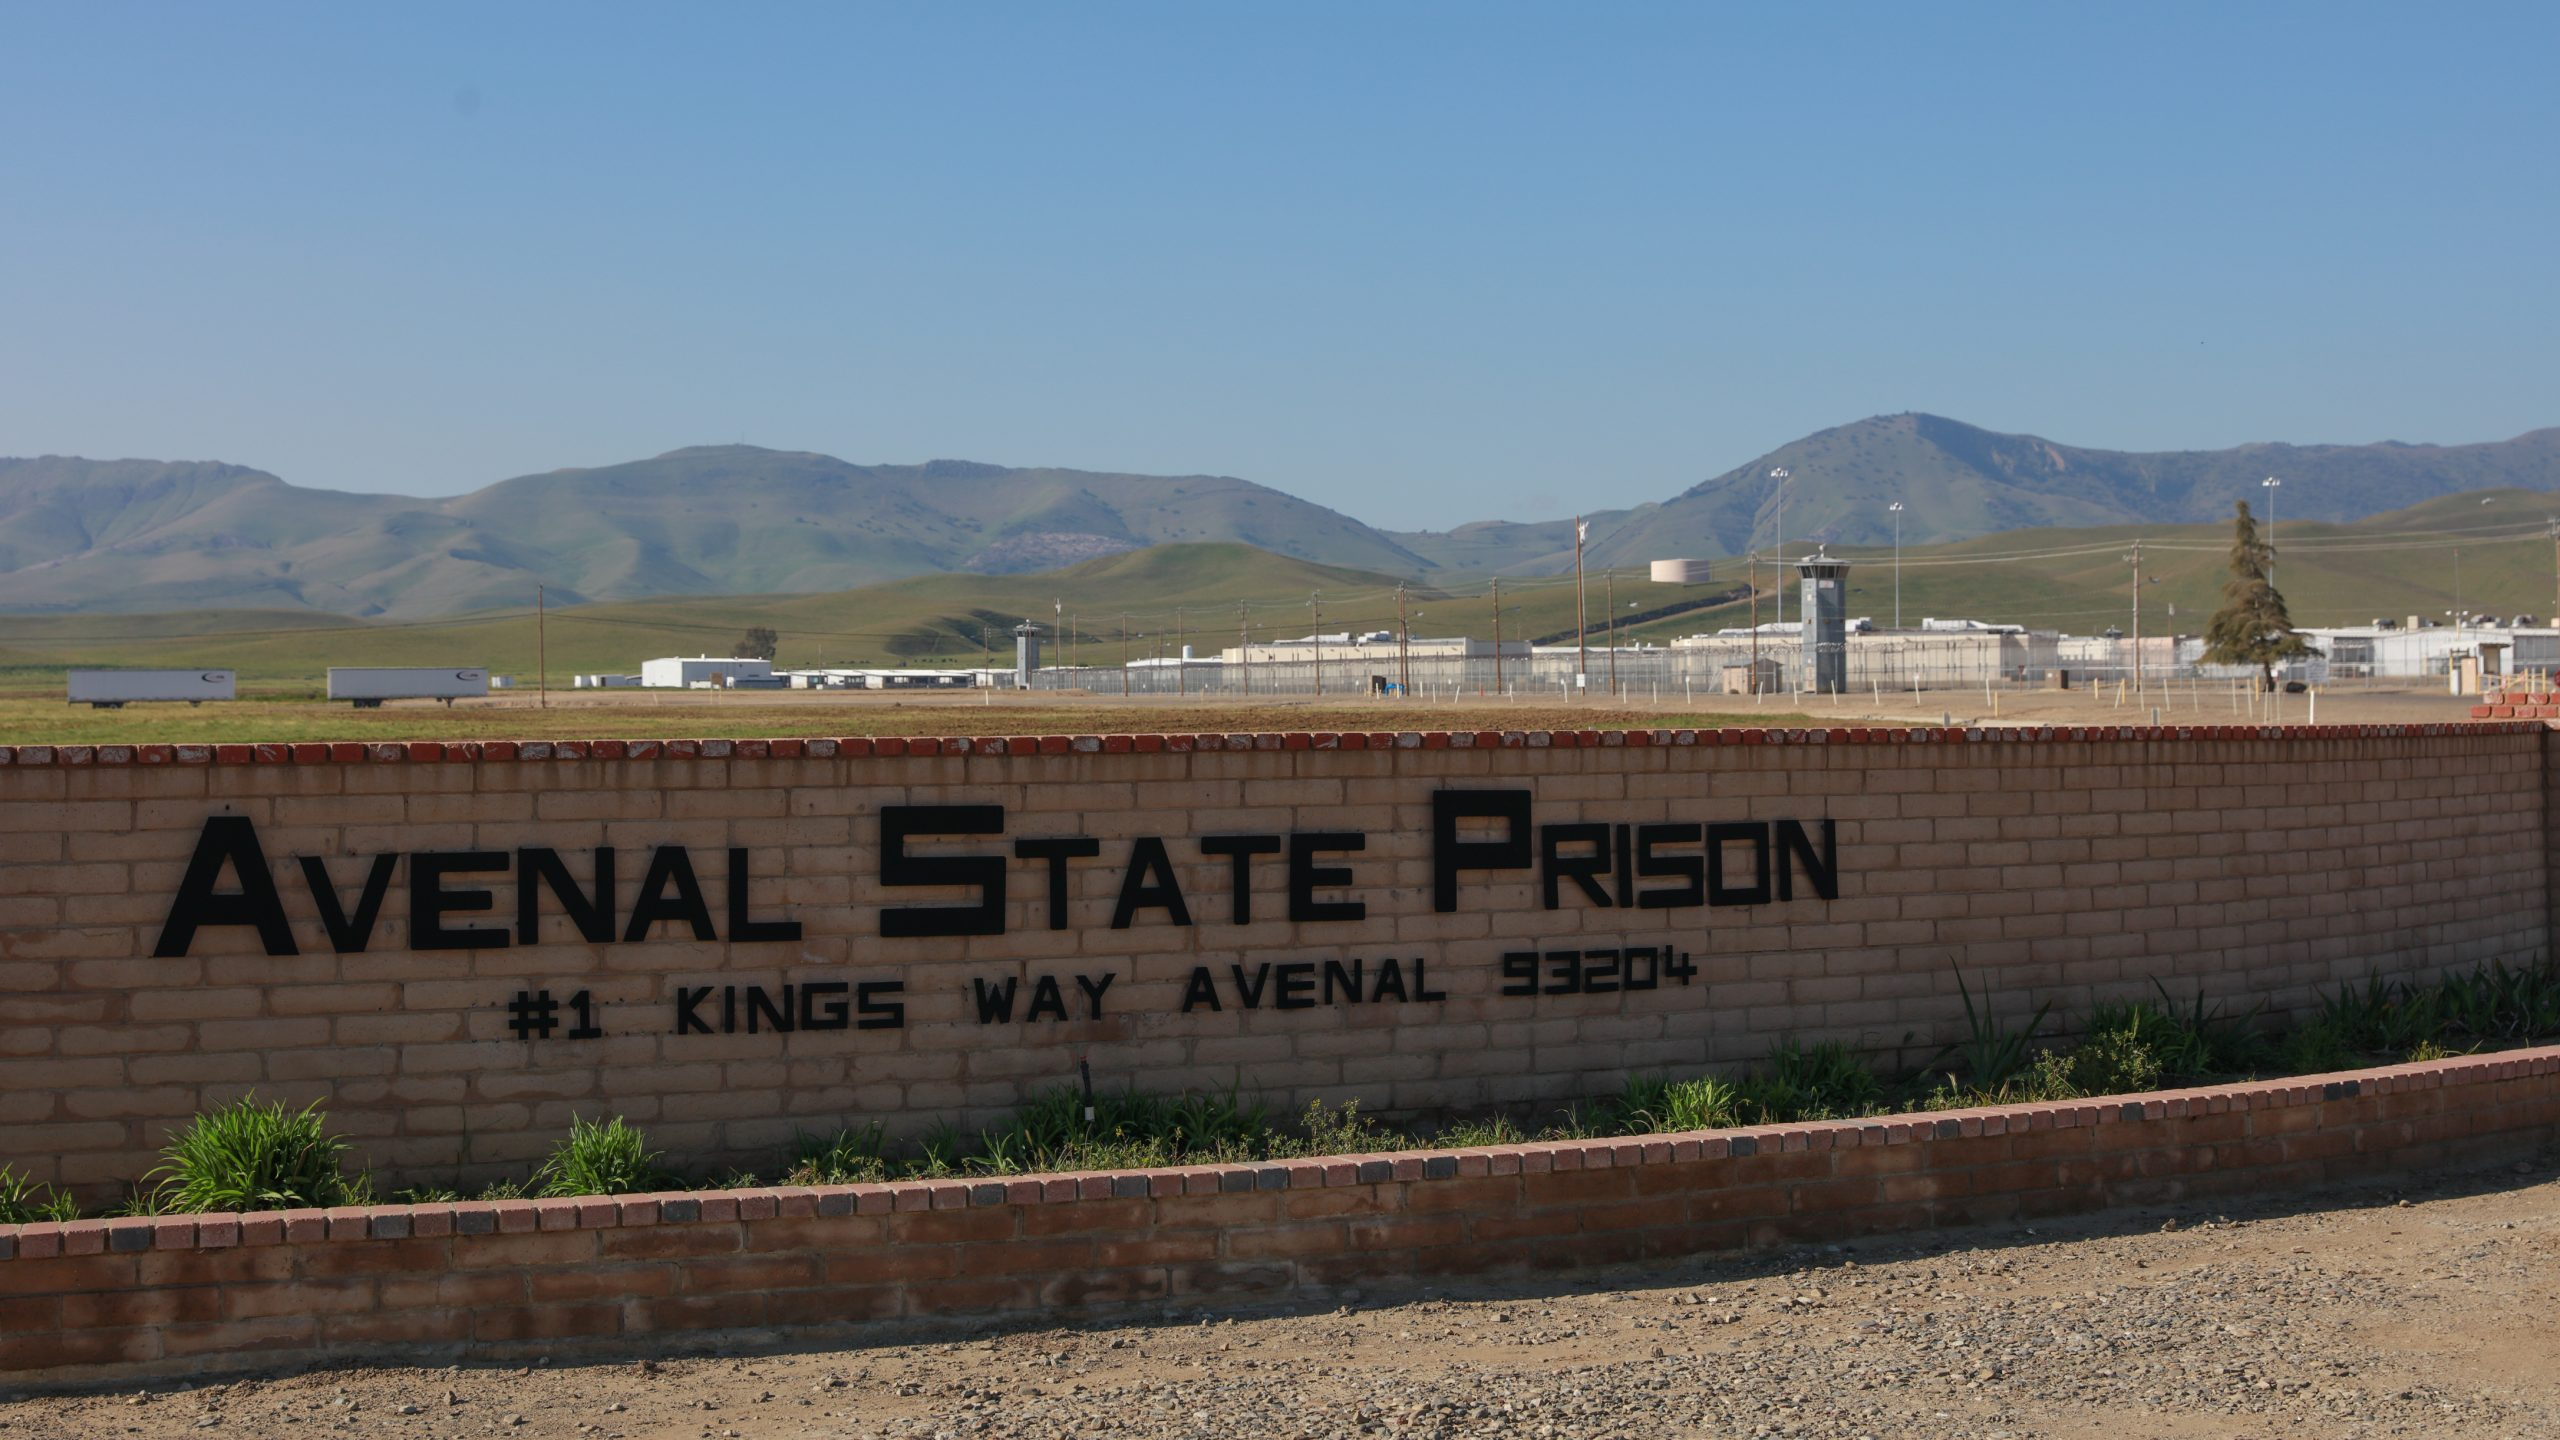 Avenal State Prison sign with prison in the background.